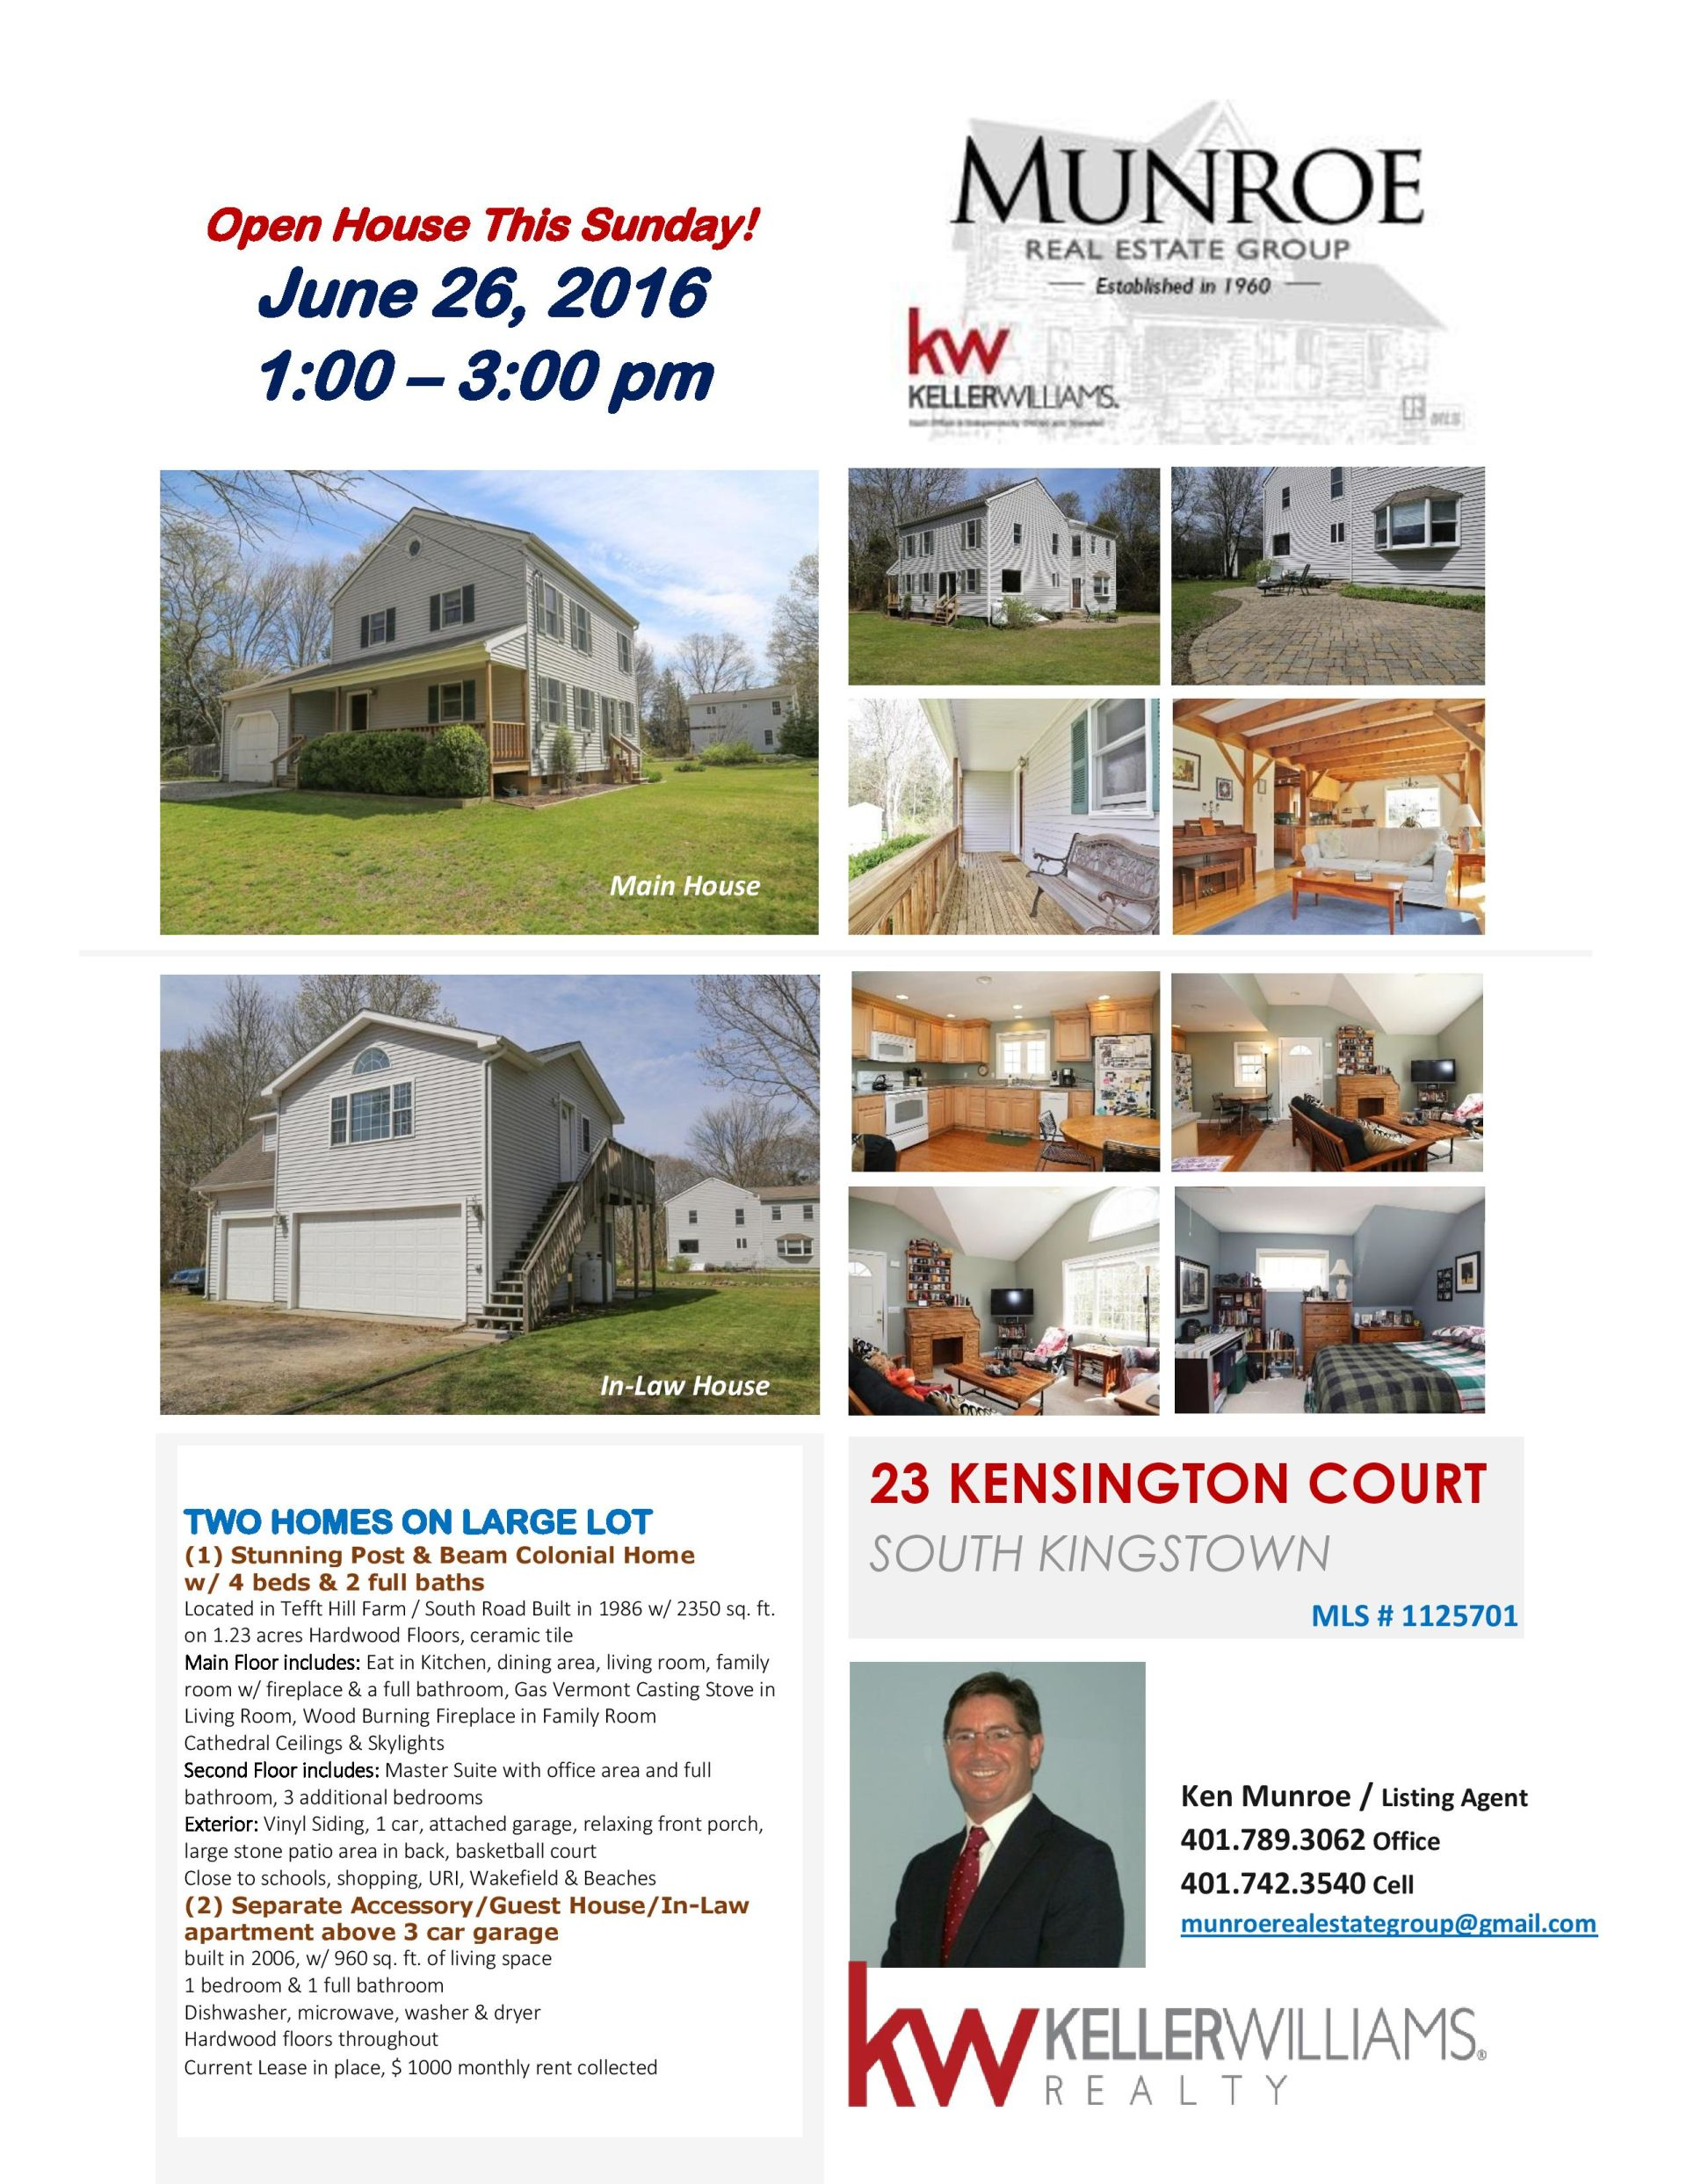 Open House This Sunday! June 26, 2016